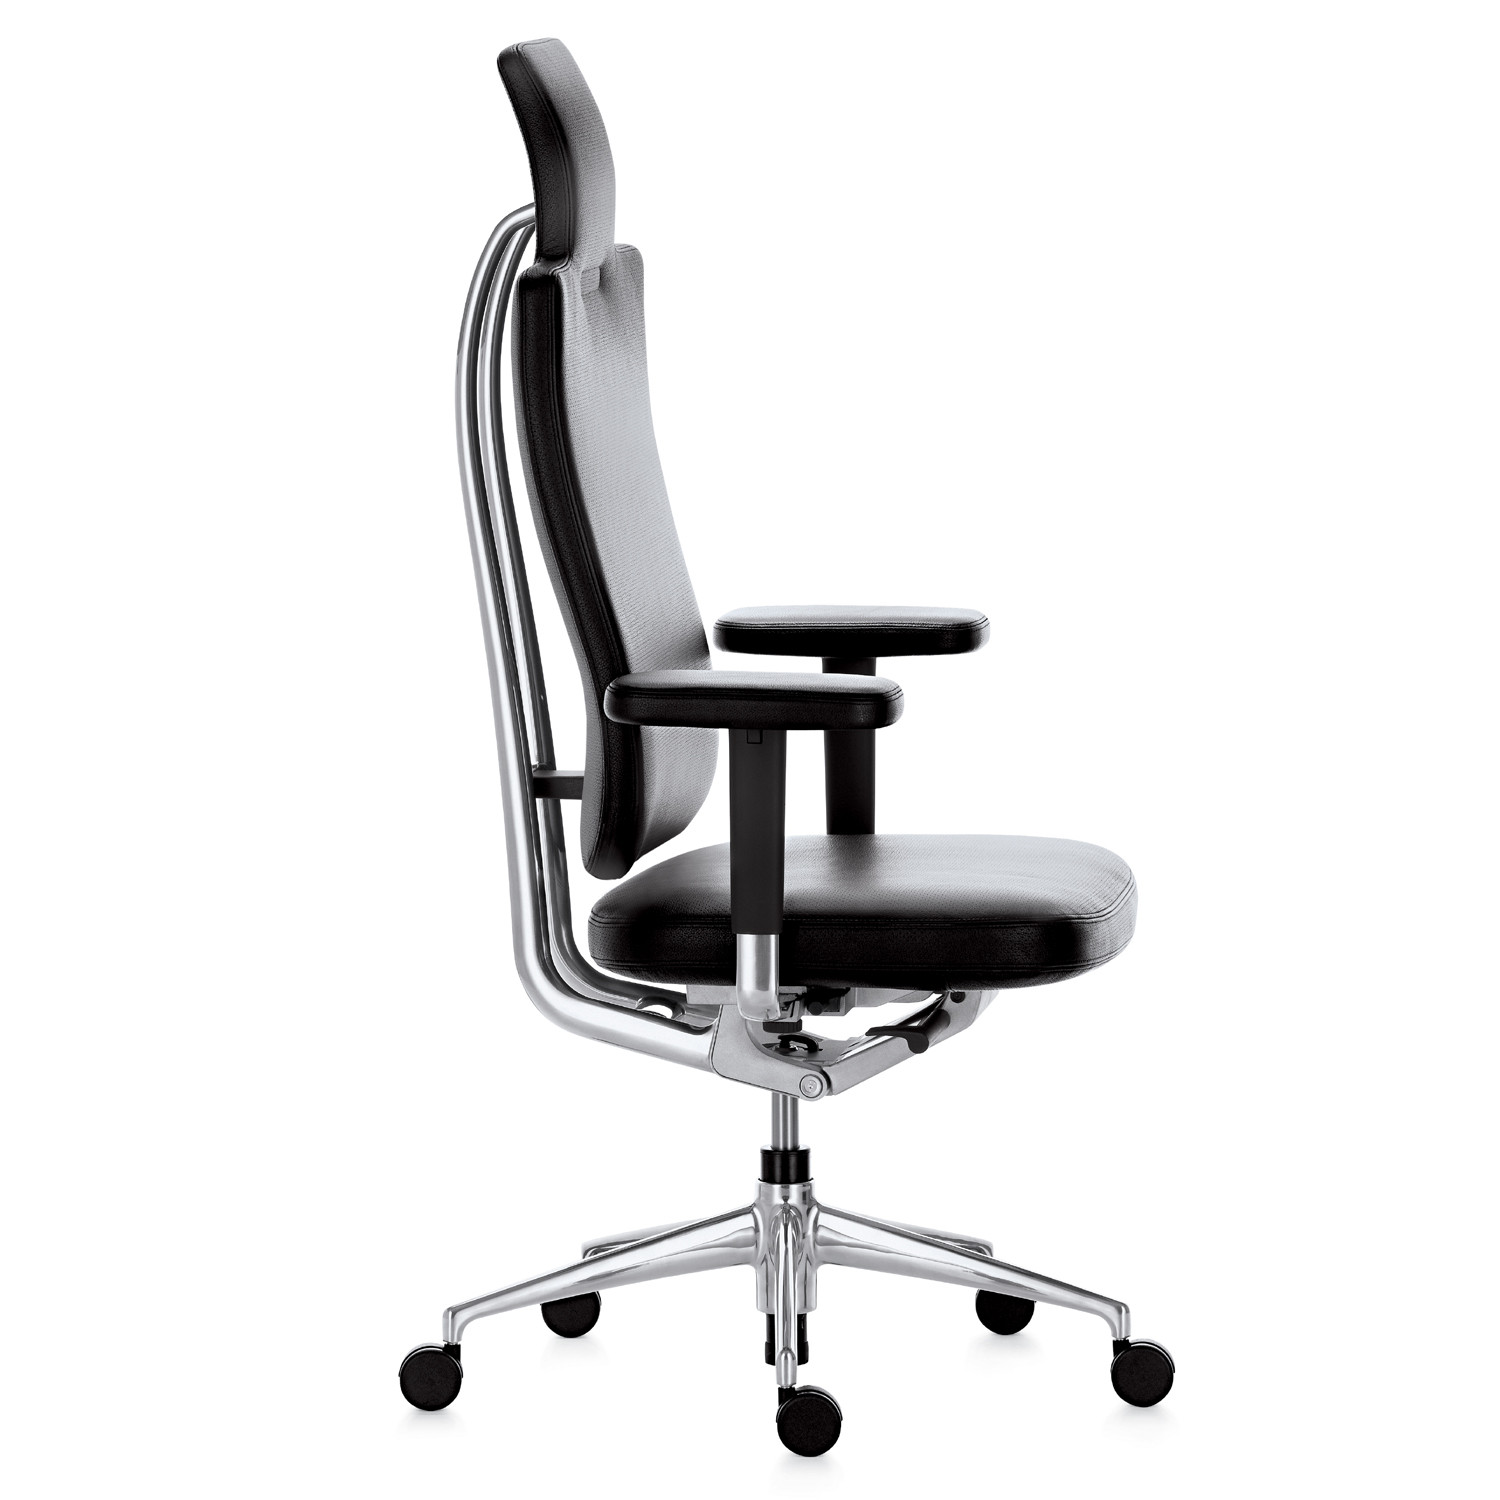 Headline Executive Office Chair